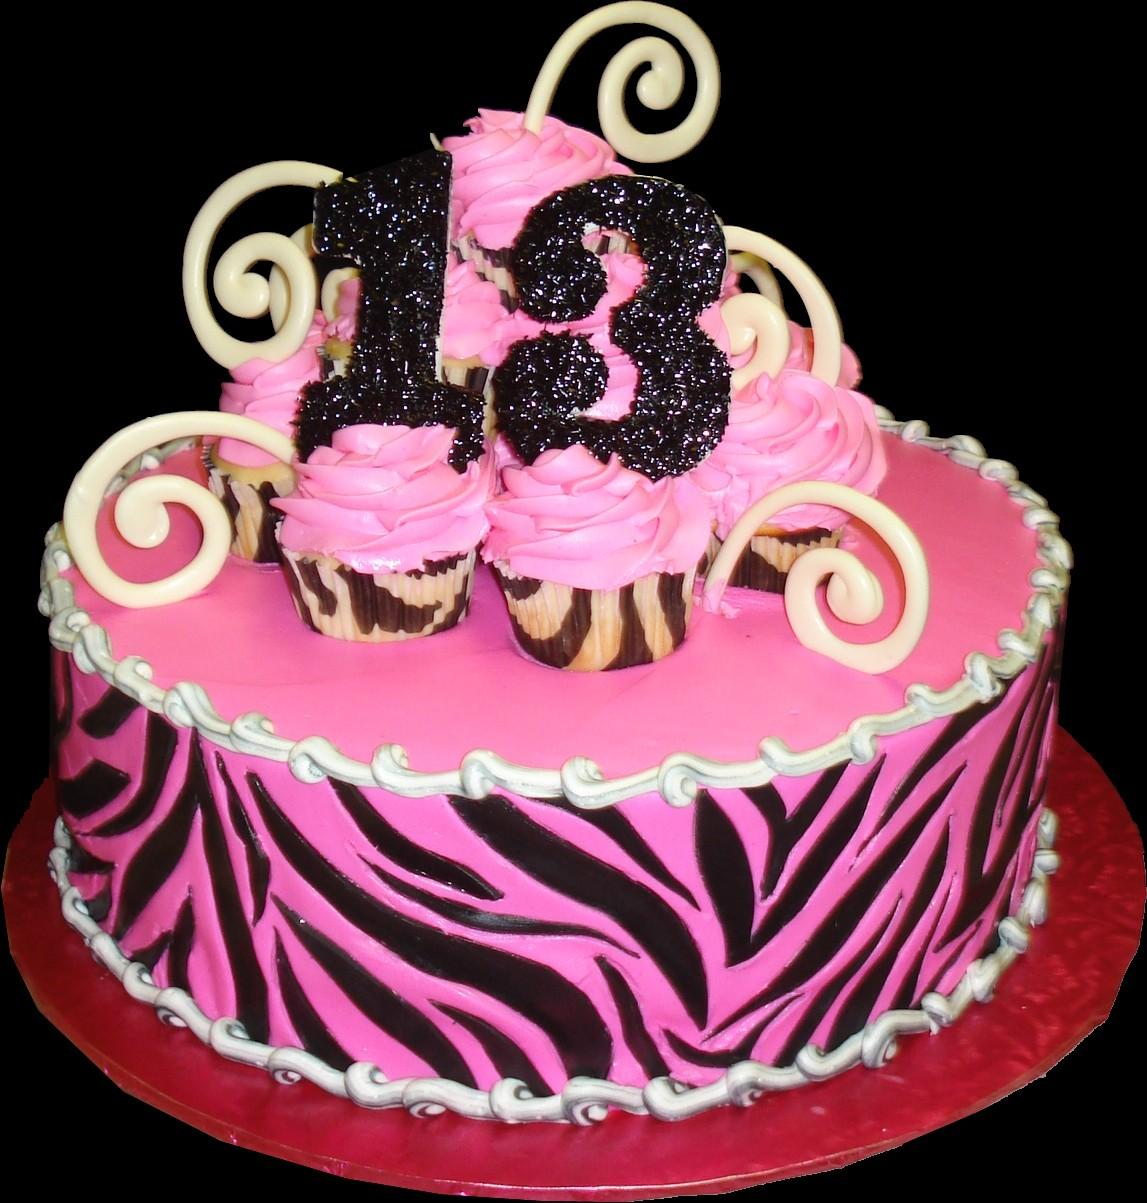 Zebra Pink 13th Birthday Cake Buttercream Iced Round Decorated With A Print